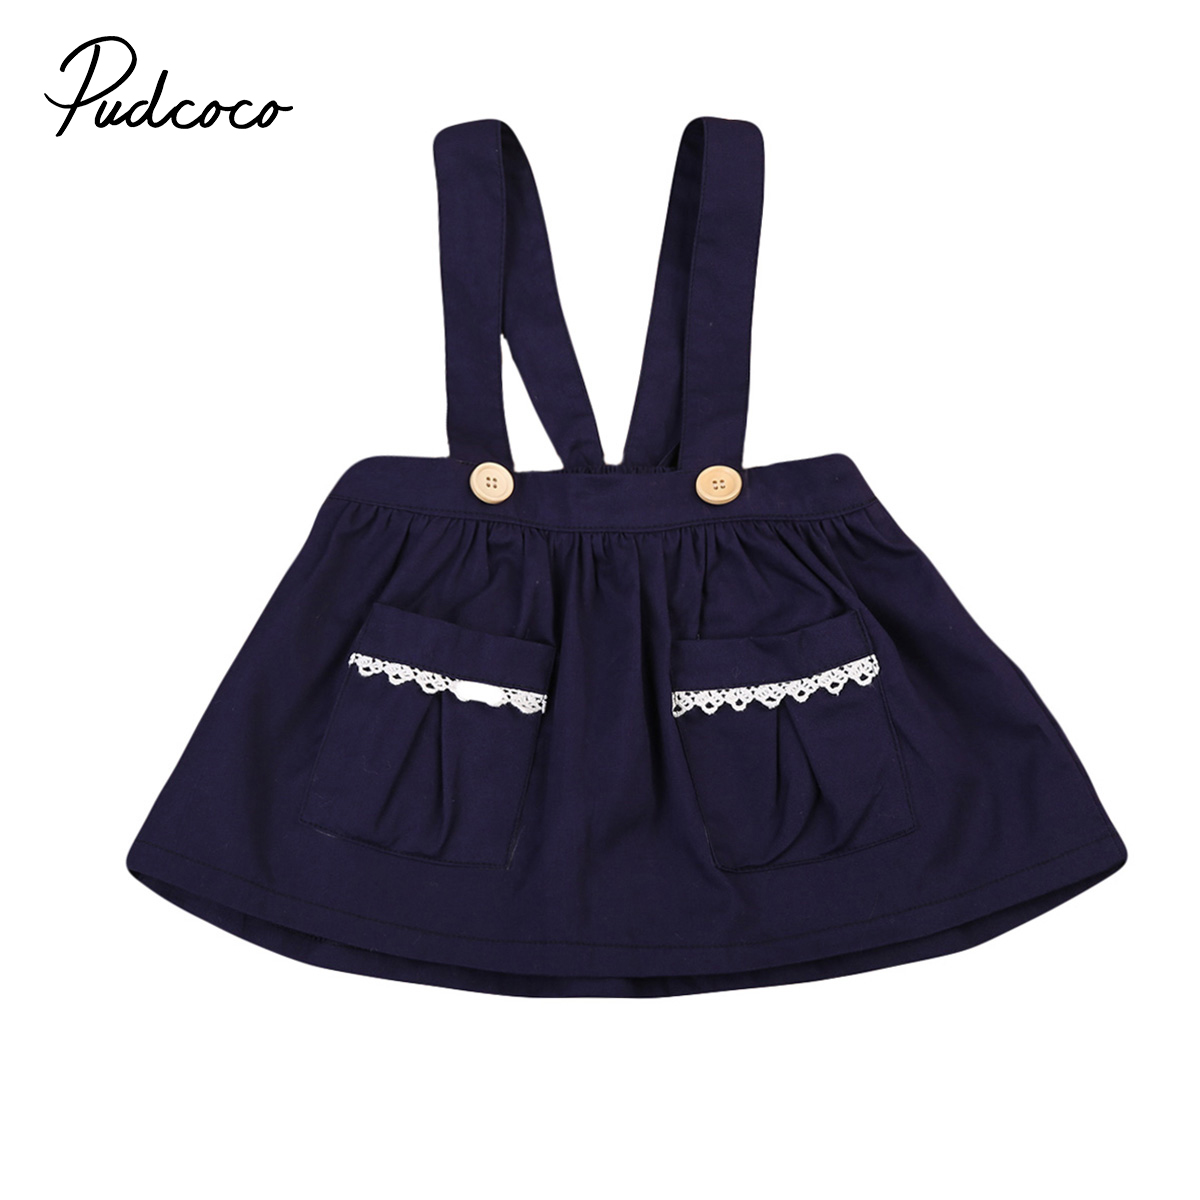 Pudcoco 0-3Y Baby Girls Dresses Sleeveless Pocket Braces Above Knee Casual Autumn Party Dresses 6M-3Y